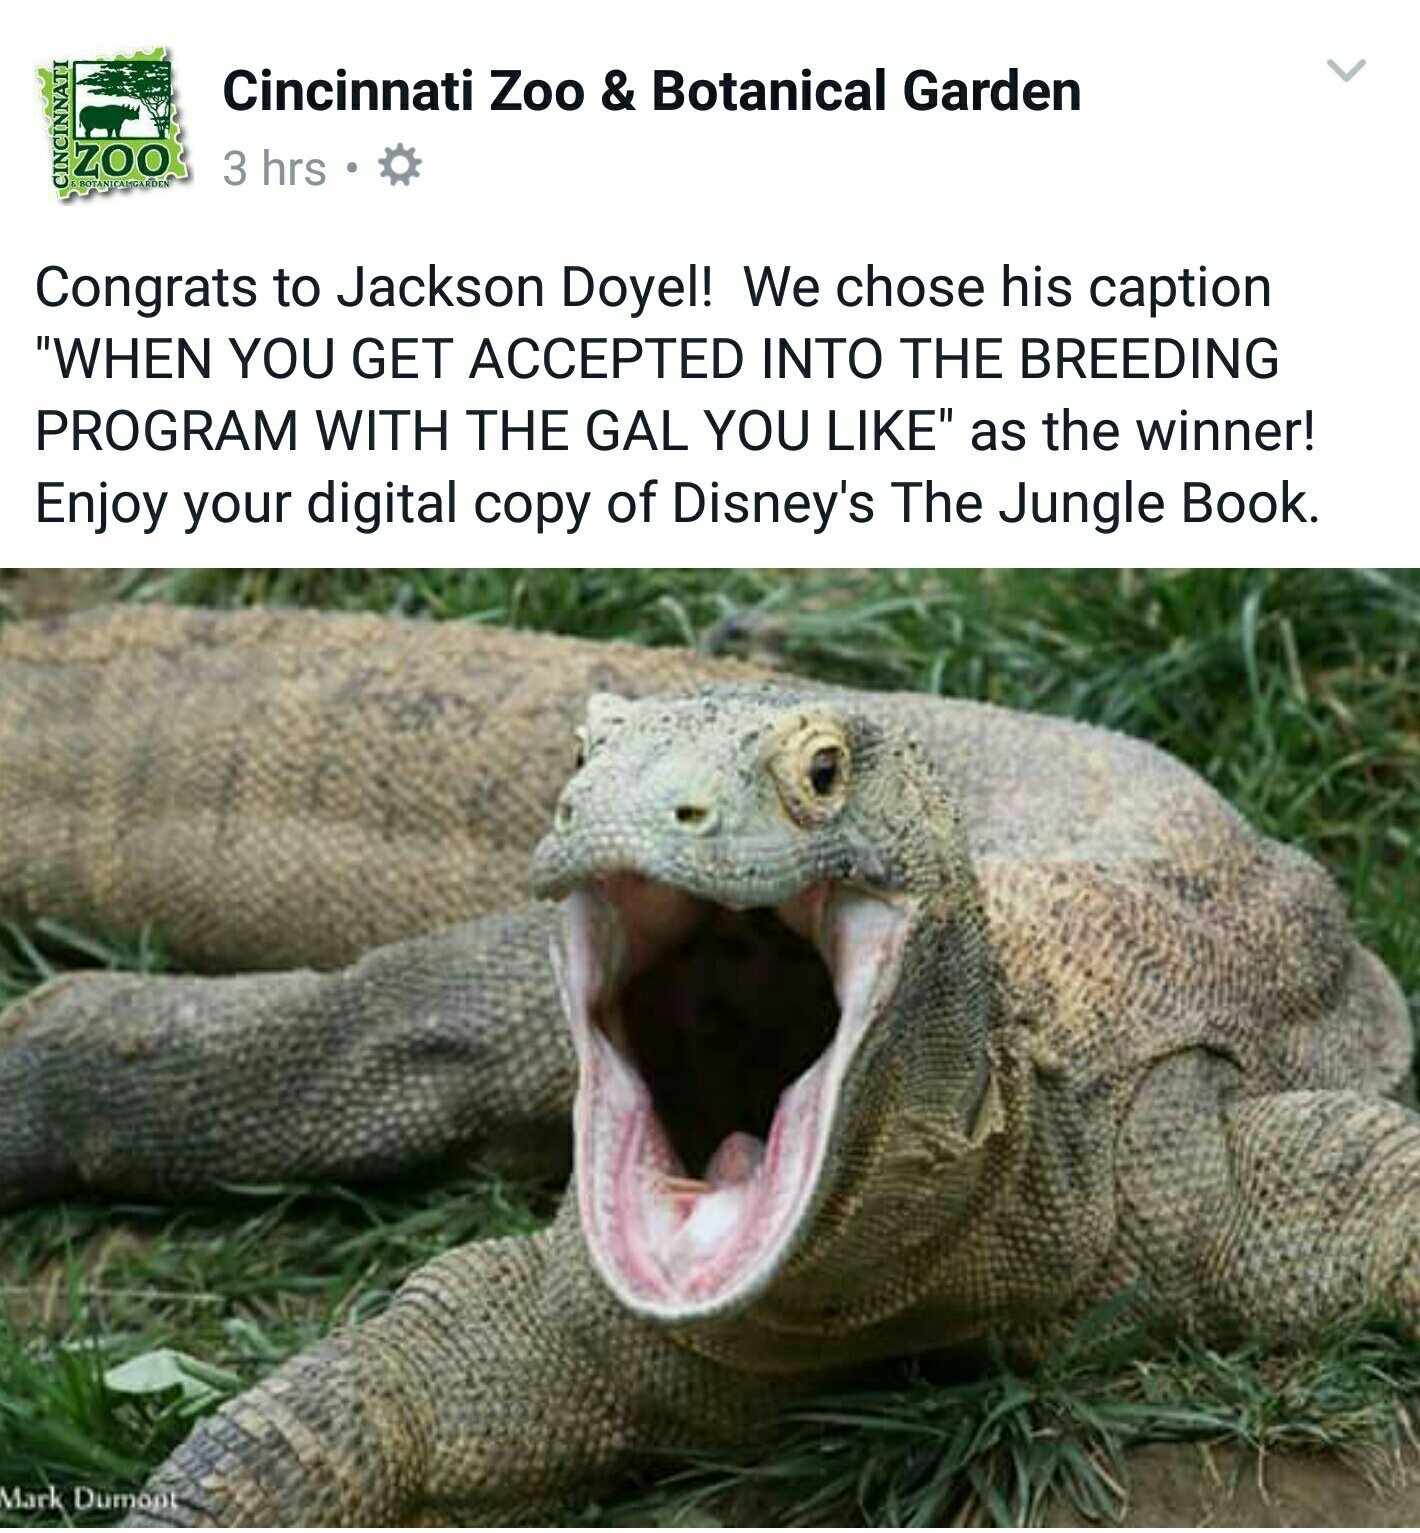 Harambe would've loved to be accepted into his breeding program smh - meme